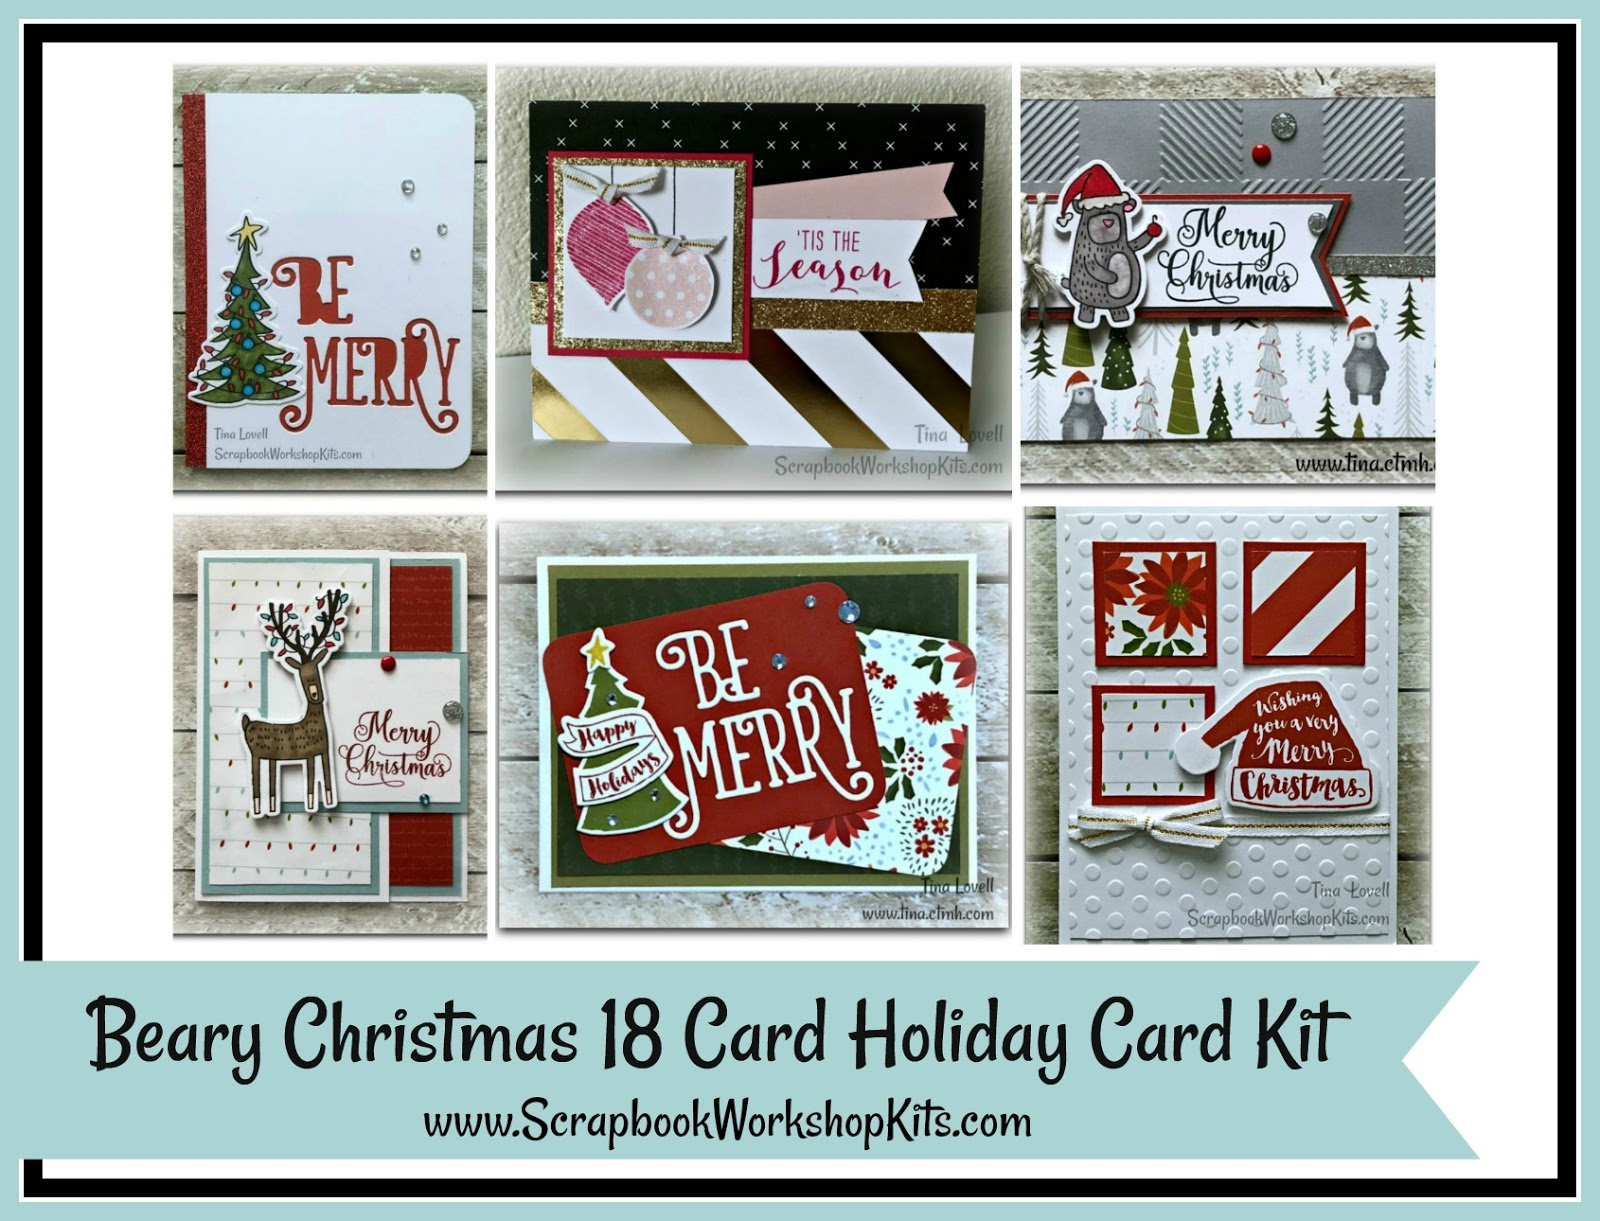 Scrapbooking Kits: Beary Christmas 18 Card Holiday Cardmaking Kits ...